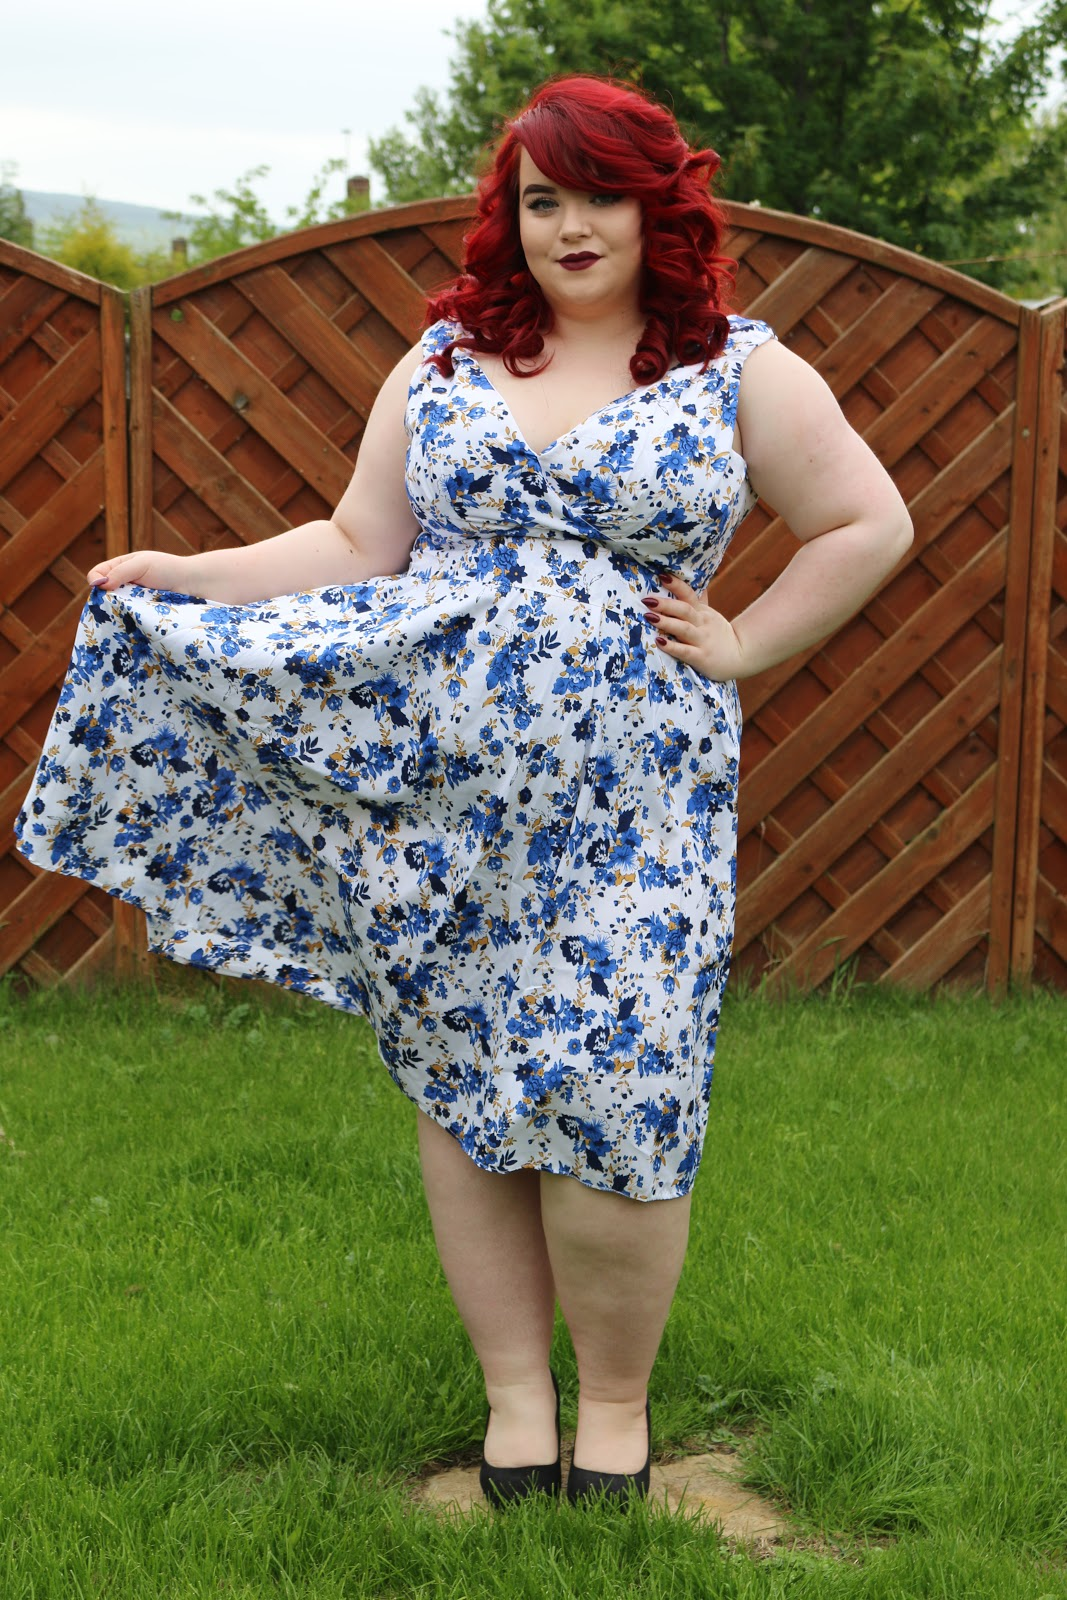 BBW Couture's Floral 1950s Vintage Party Dresses, shemightbeloved, georgina grogan